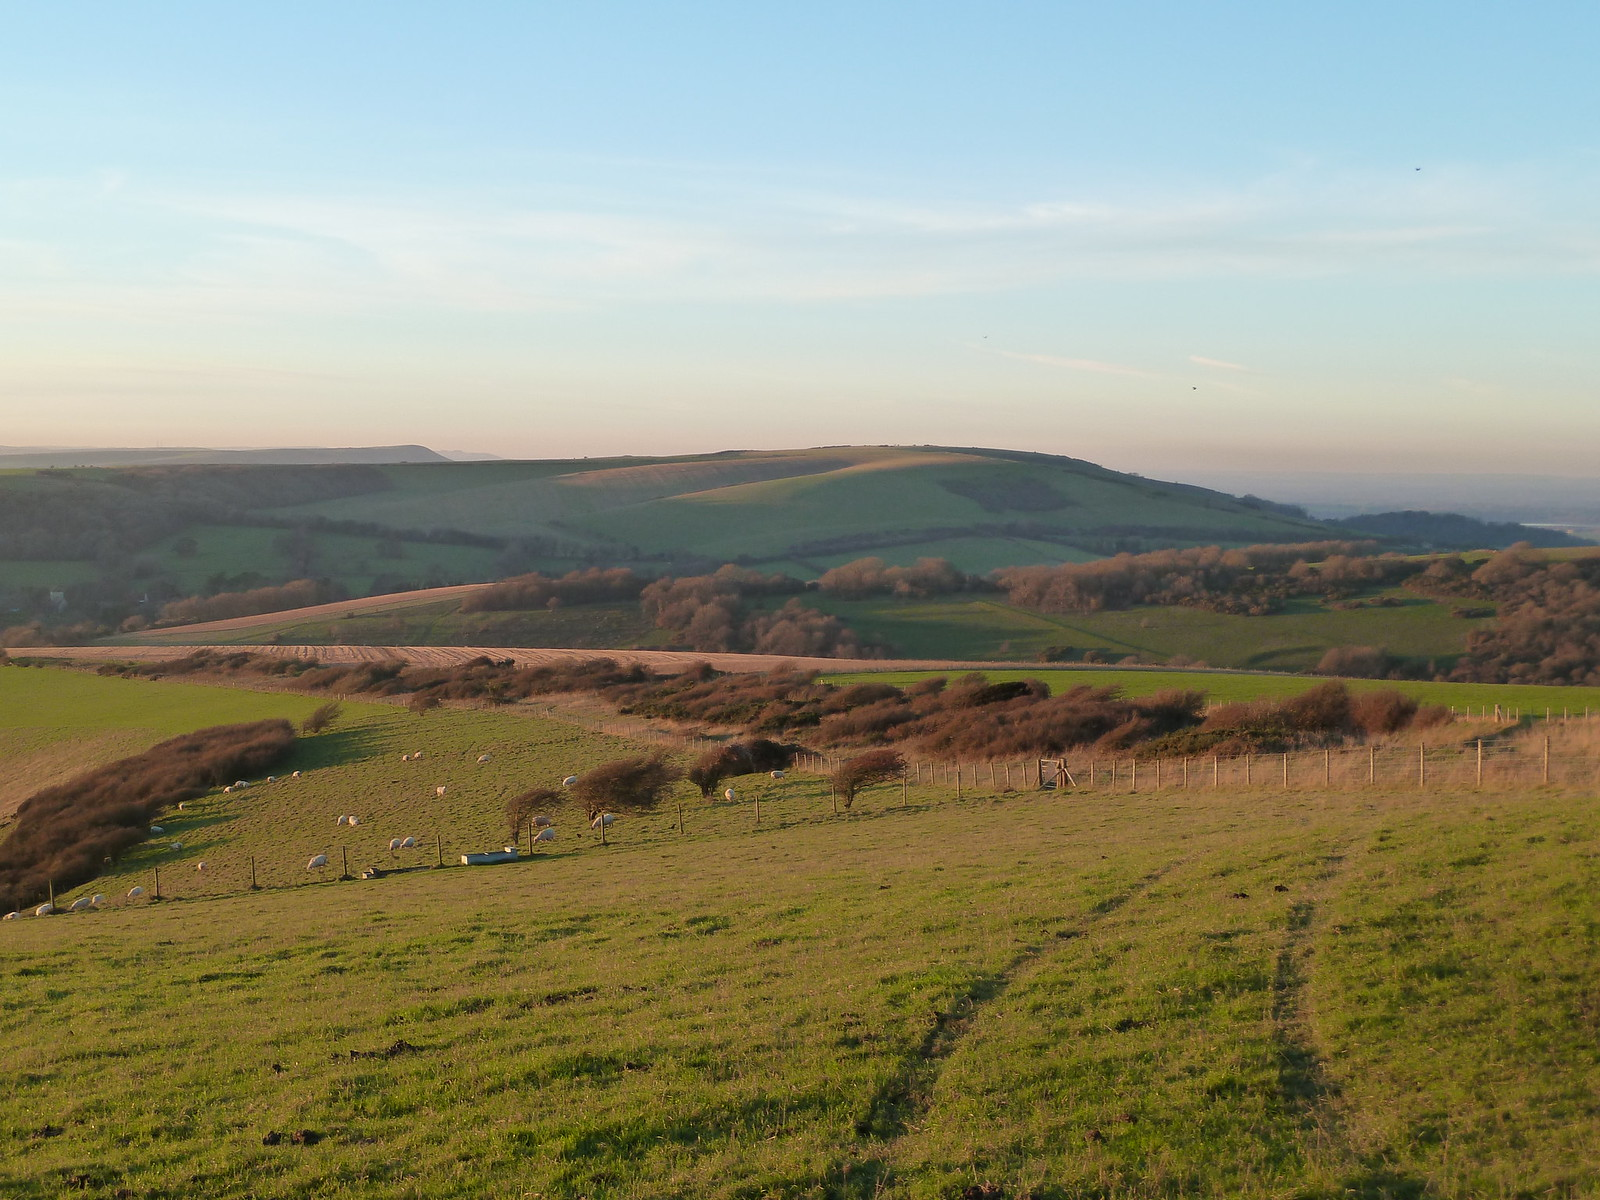 South Downs Winter (Berwick to Birling Gap) Downs in winter afternoon light.